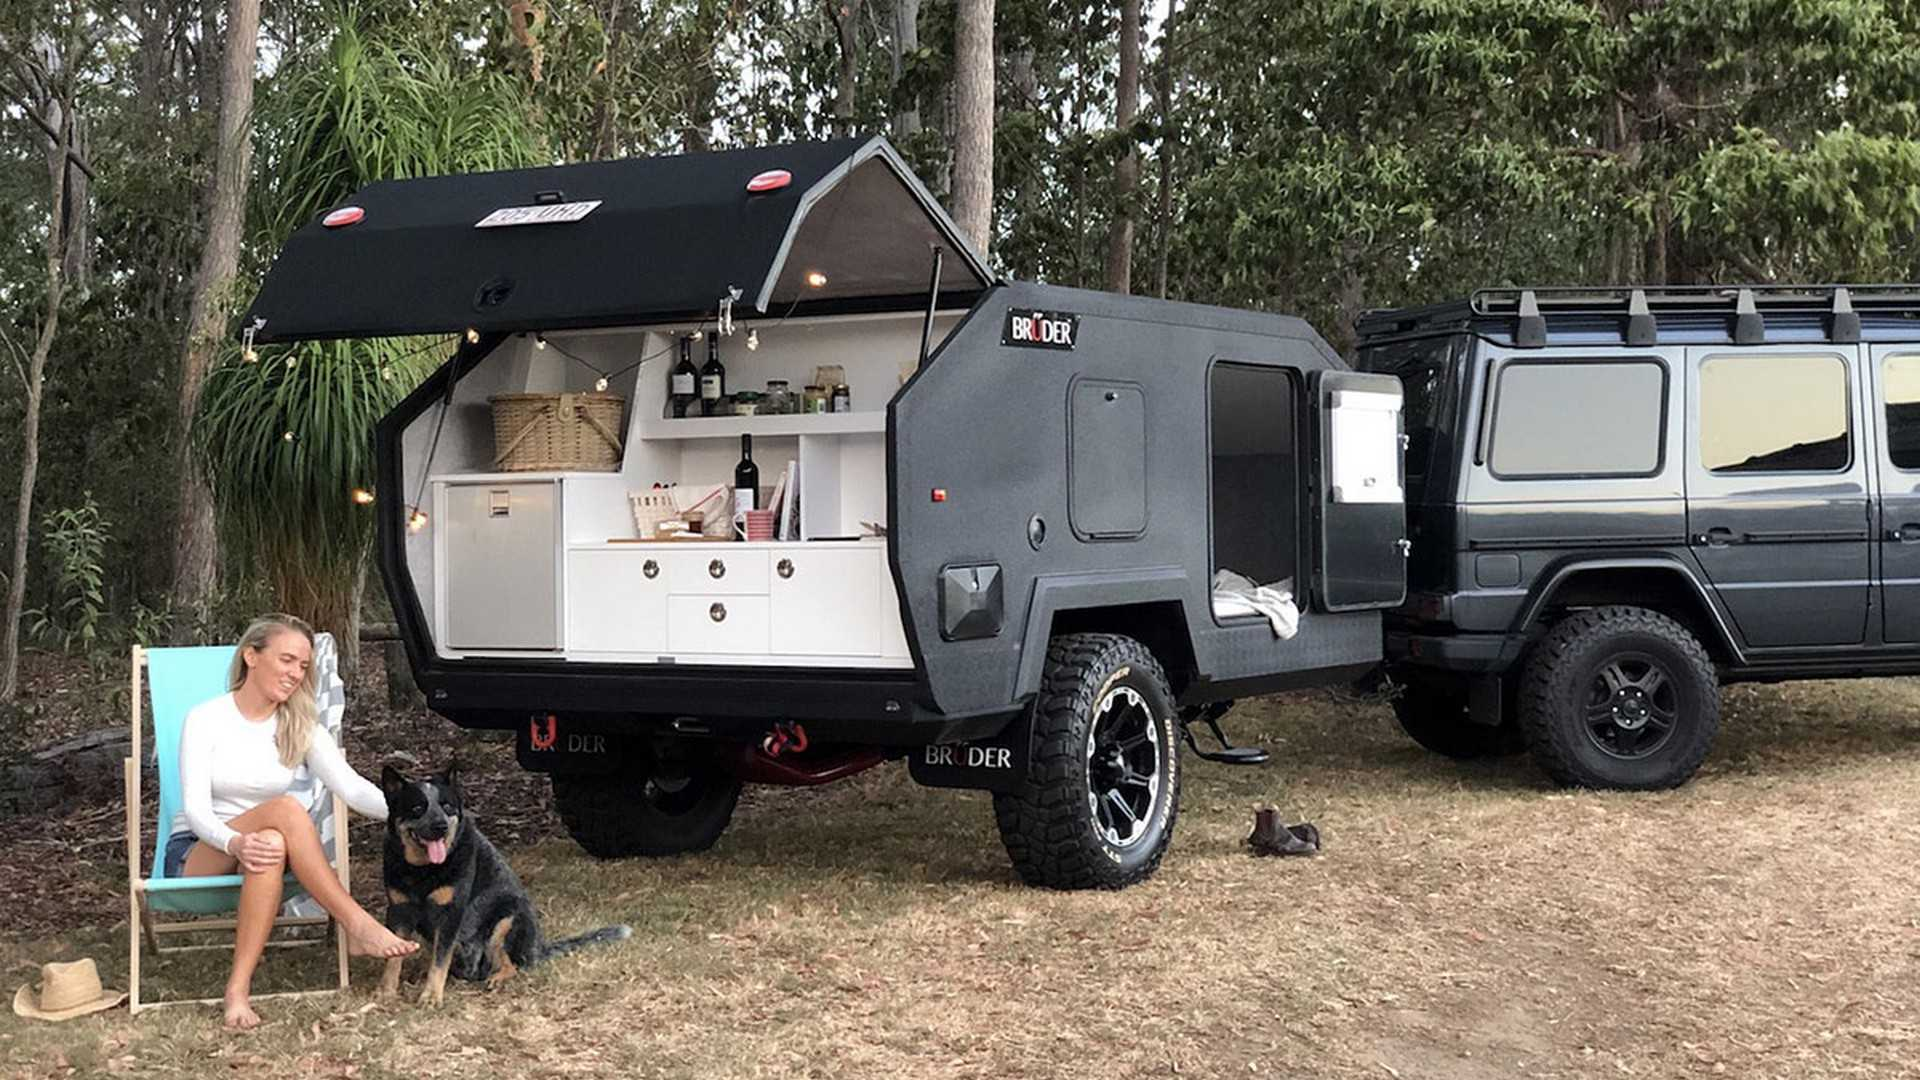 4 Camping Bruder Exp 4 Trailer Is The Camper You Could Actually Afford